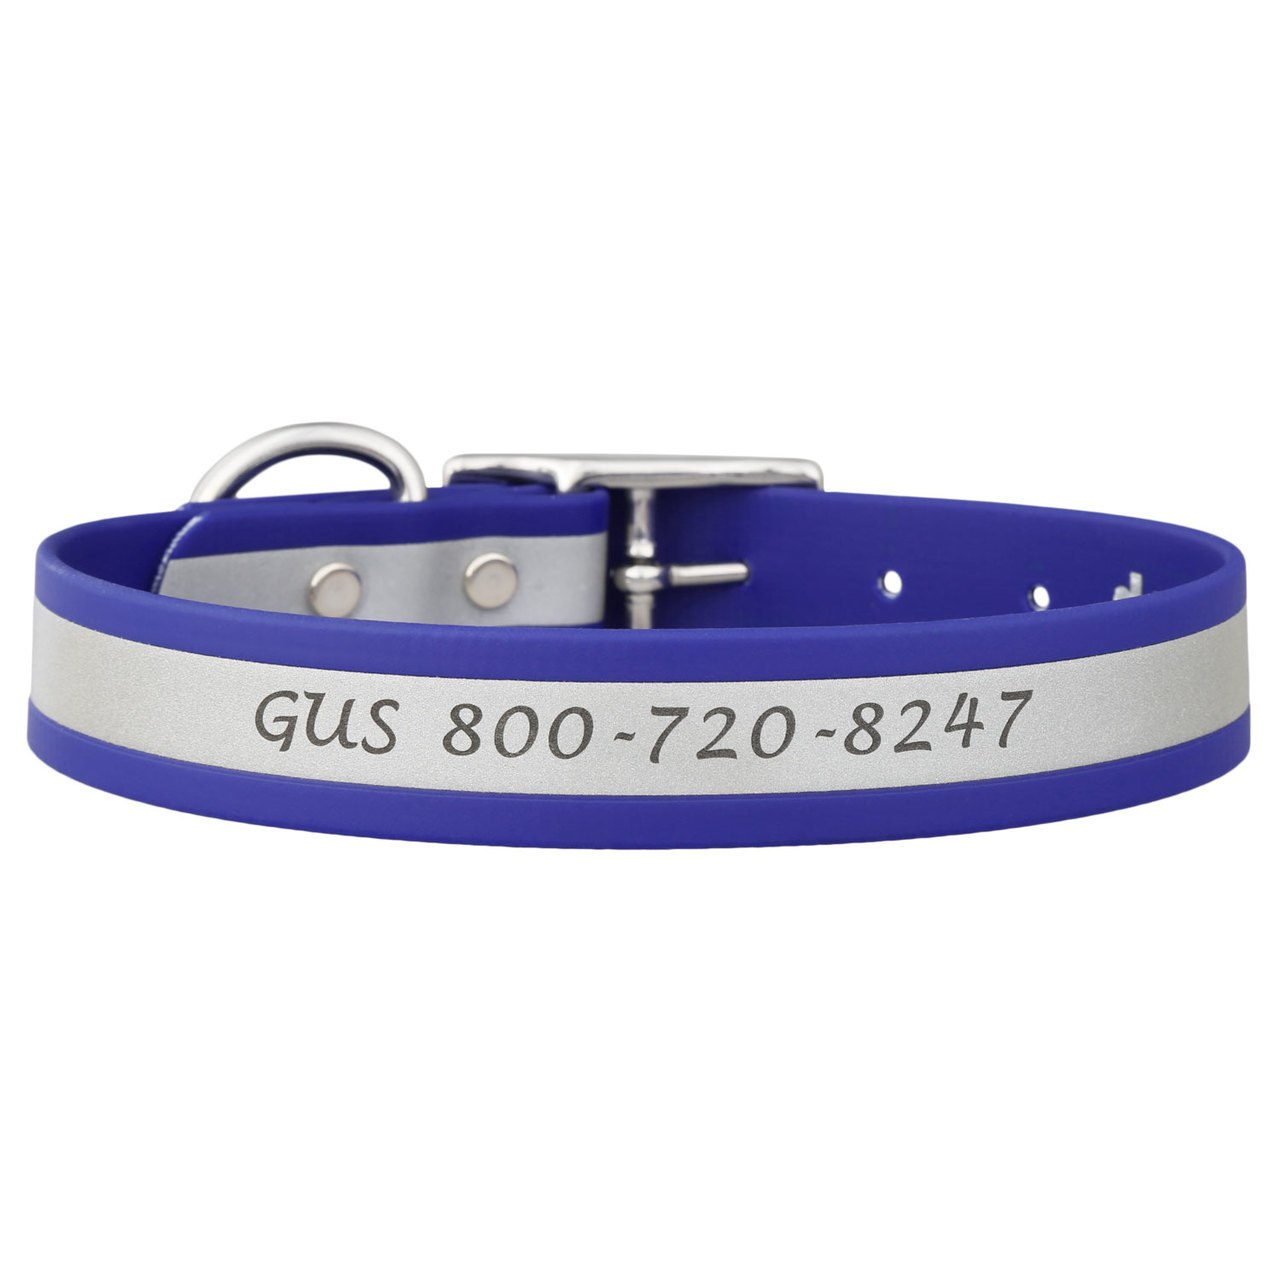 Engraved Reflective Waterproof Soft Grip Dog Collar Blue